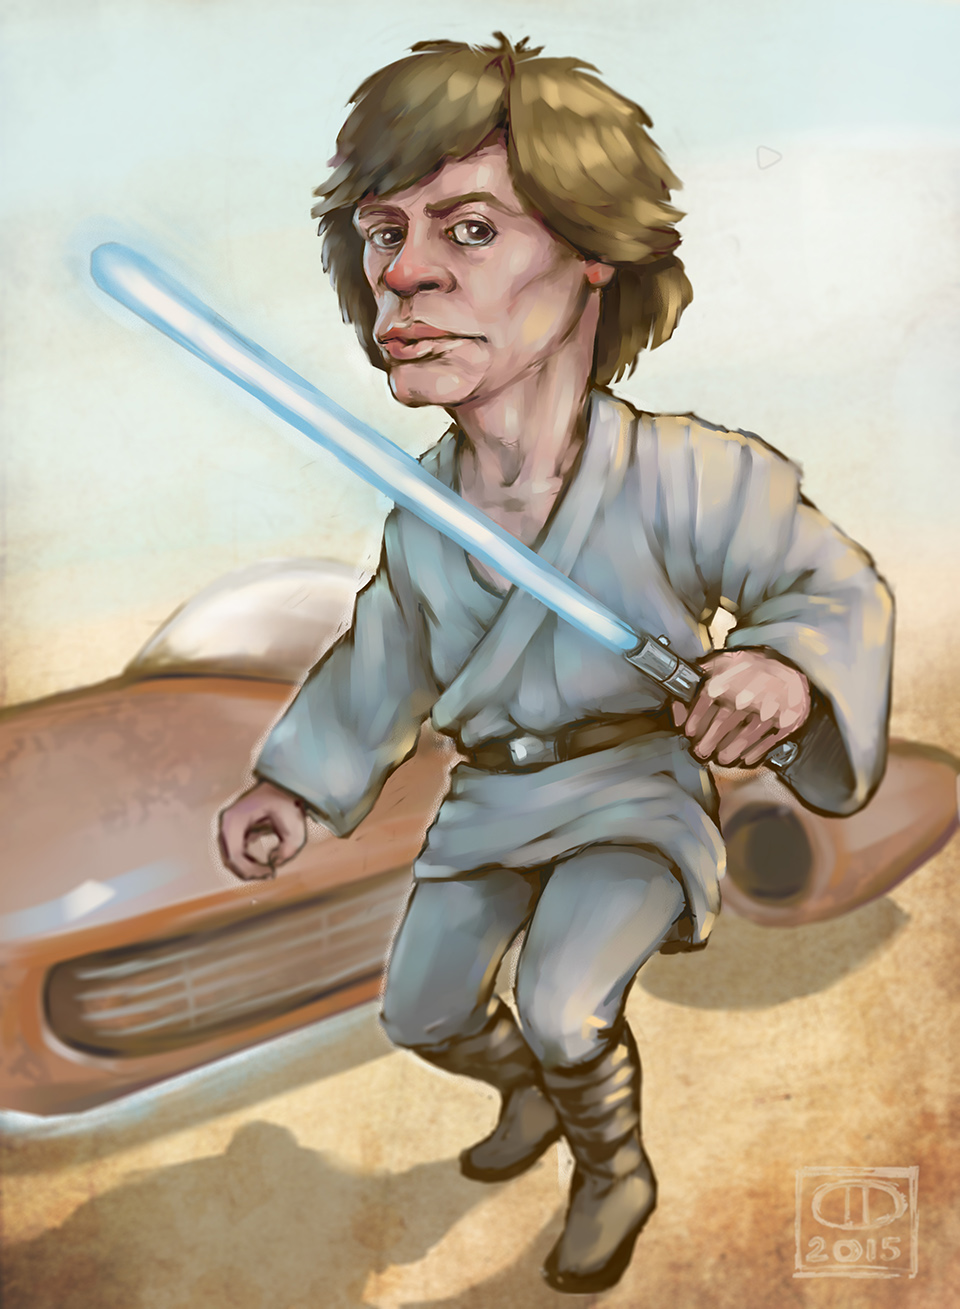 Luke Skywalker - fan art - Grafika - dejvak